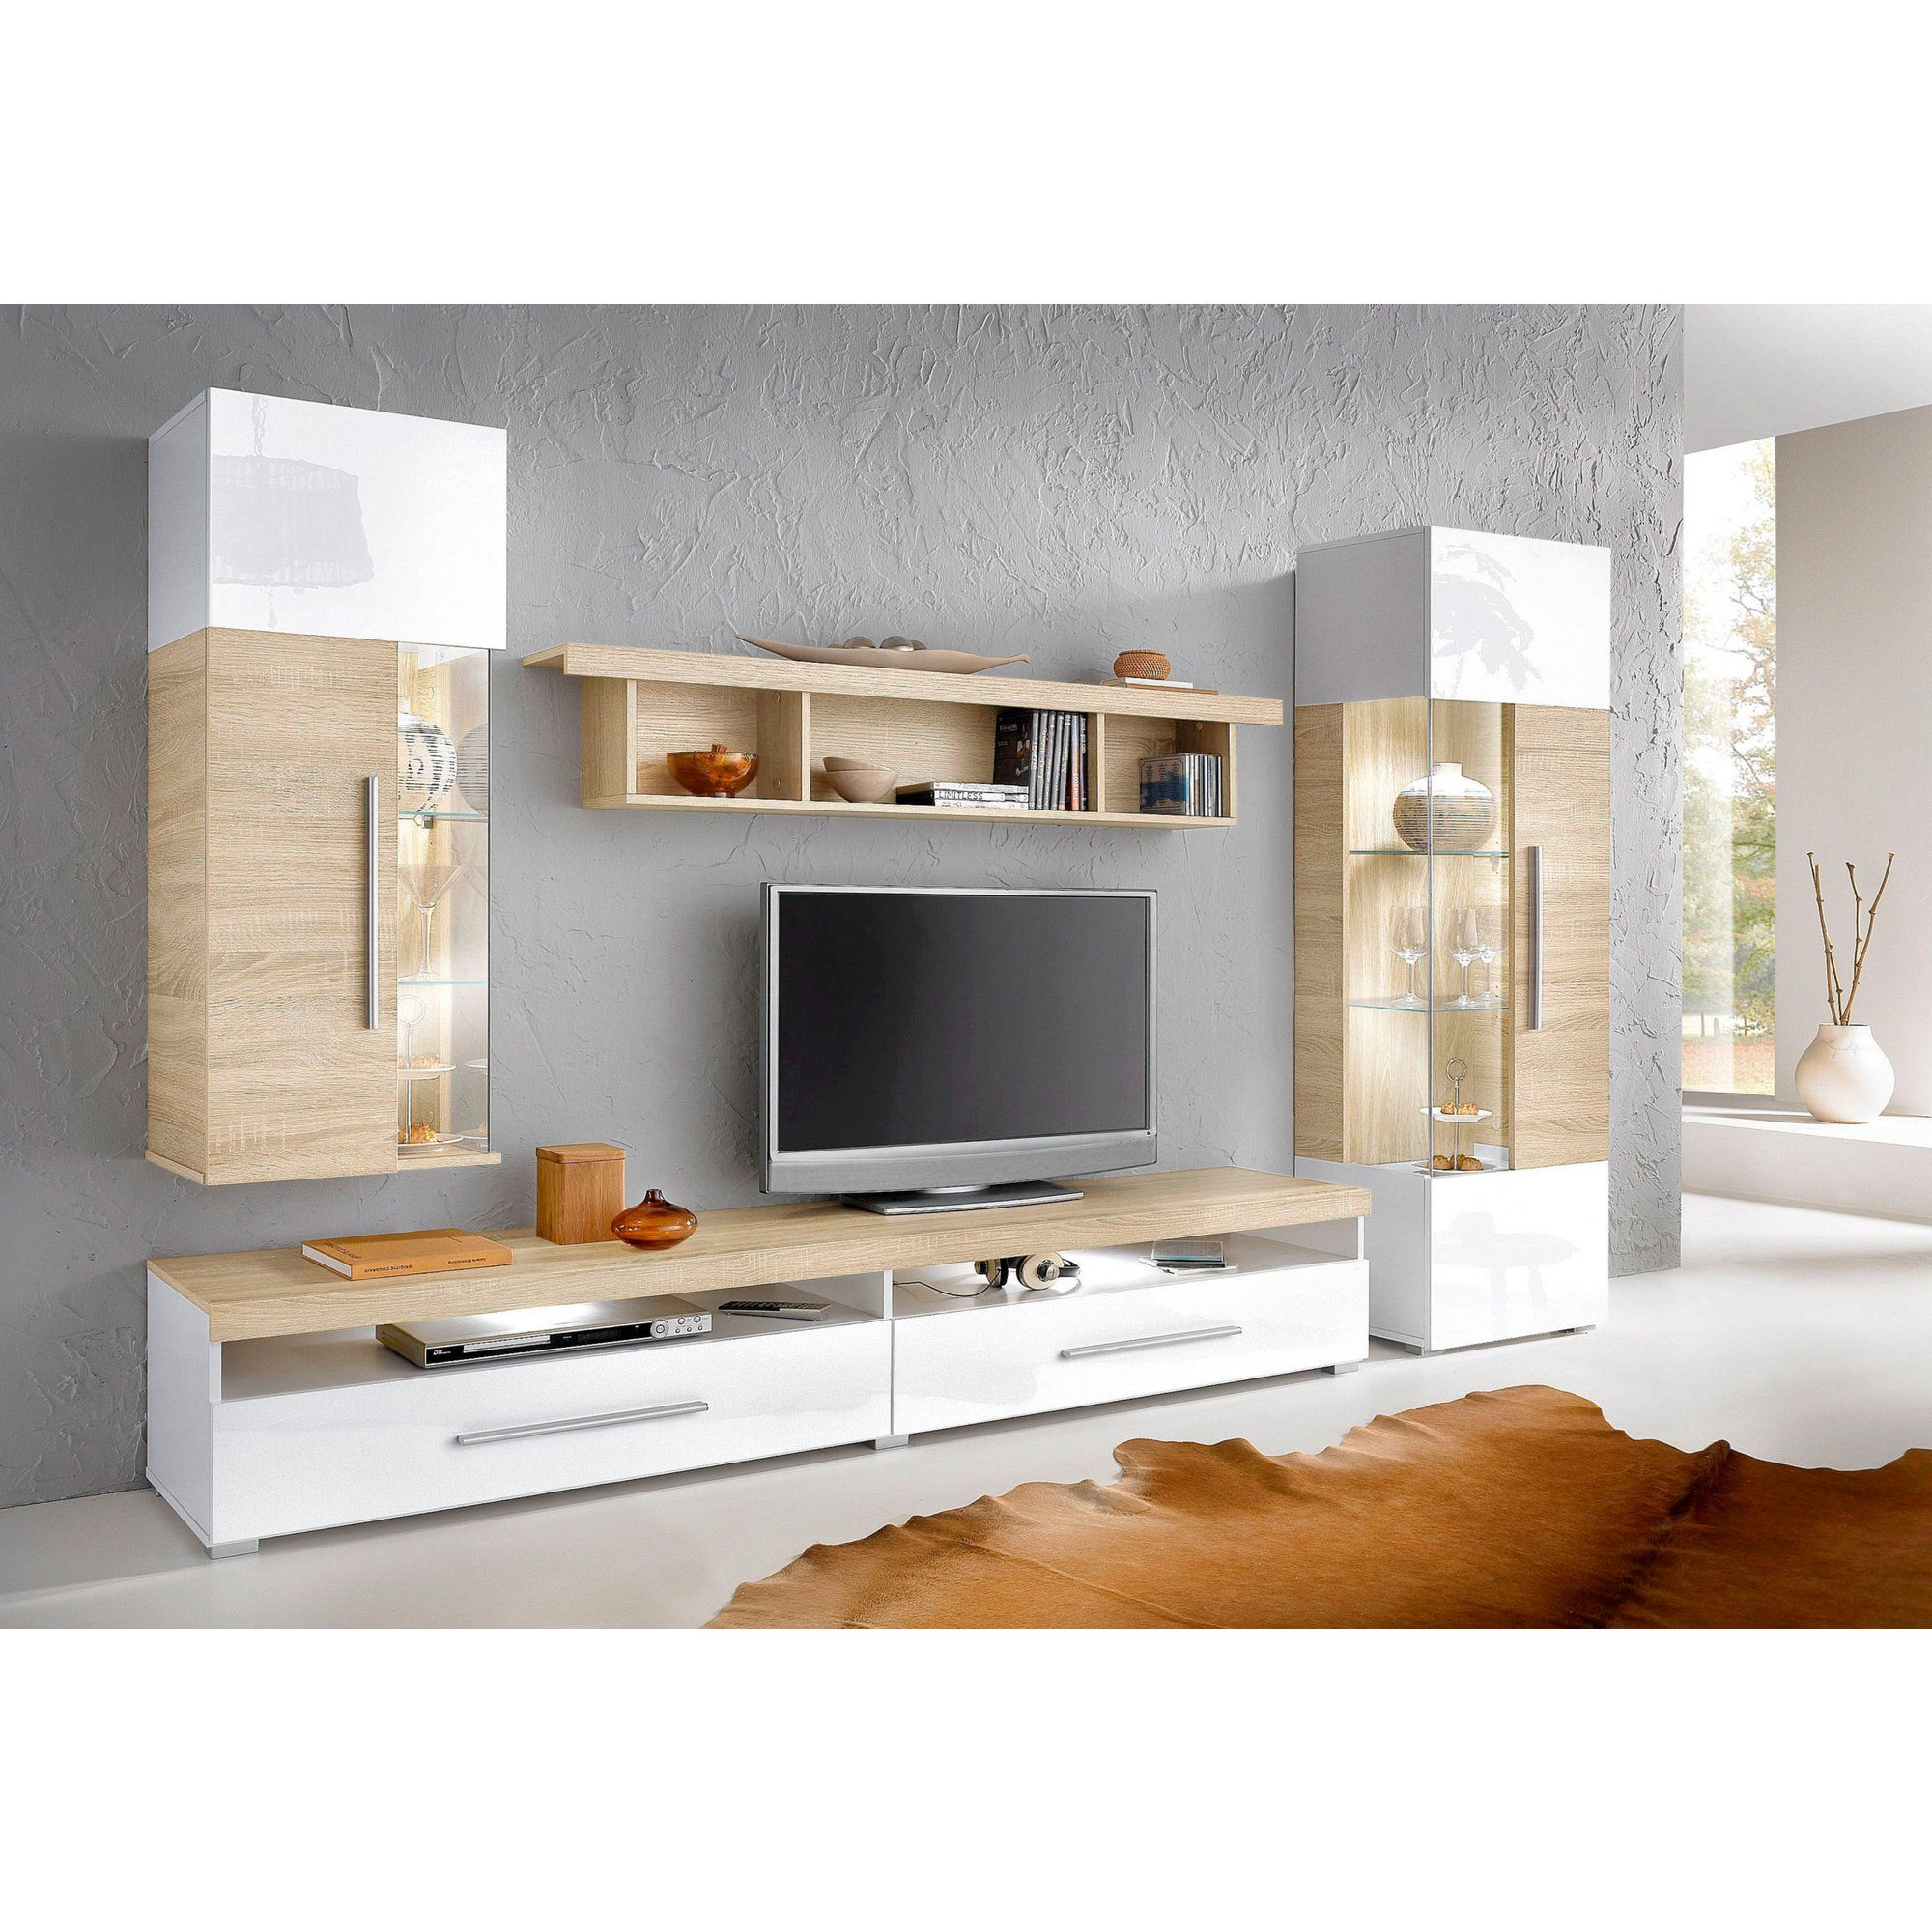 Promo Meuble Tv Meuble Tv Composition Murale Blanc Meuble Tv Living Xnn8